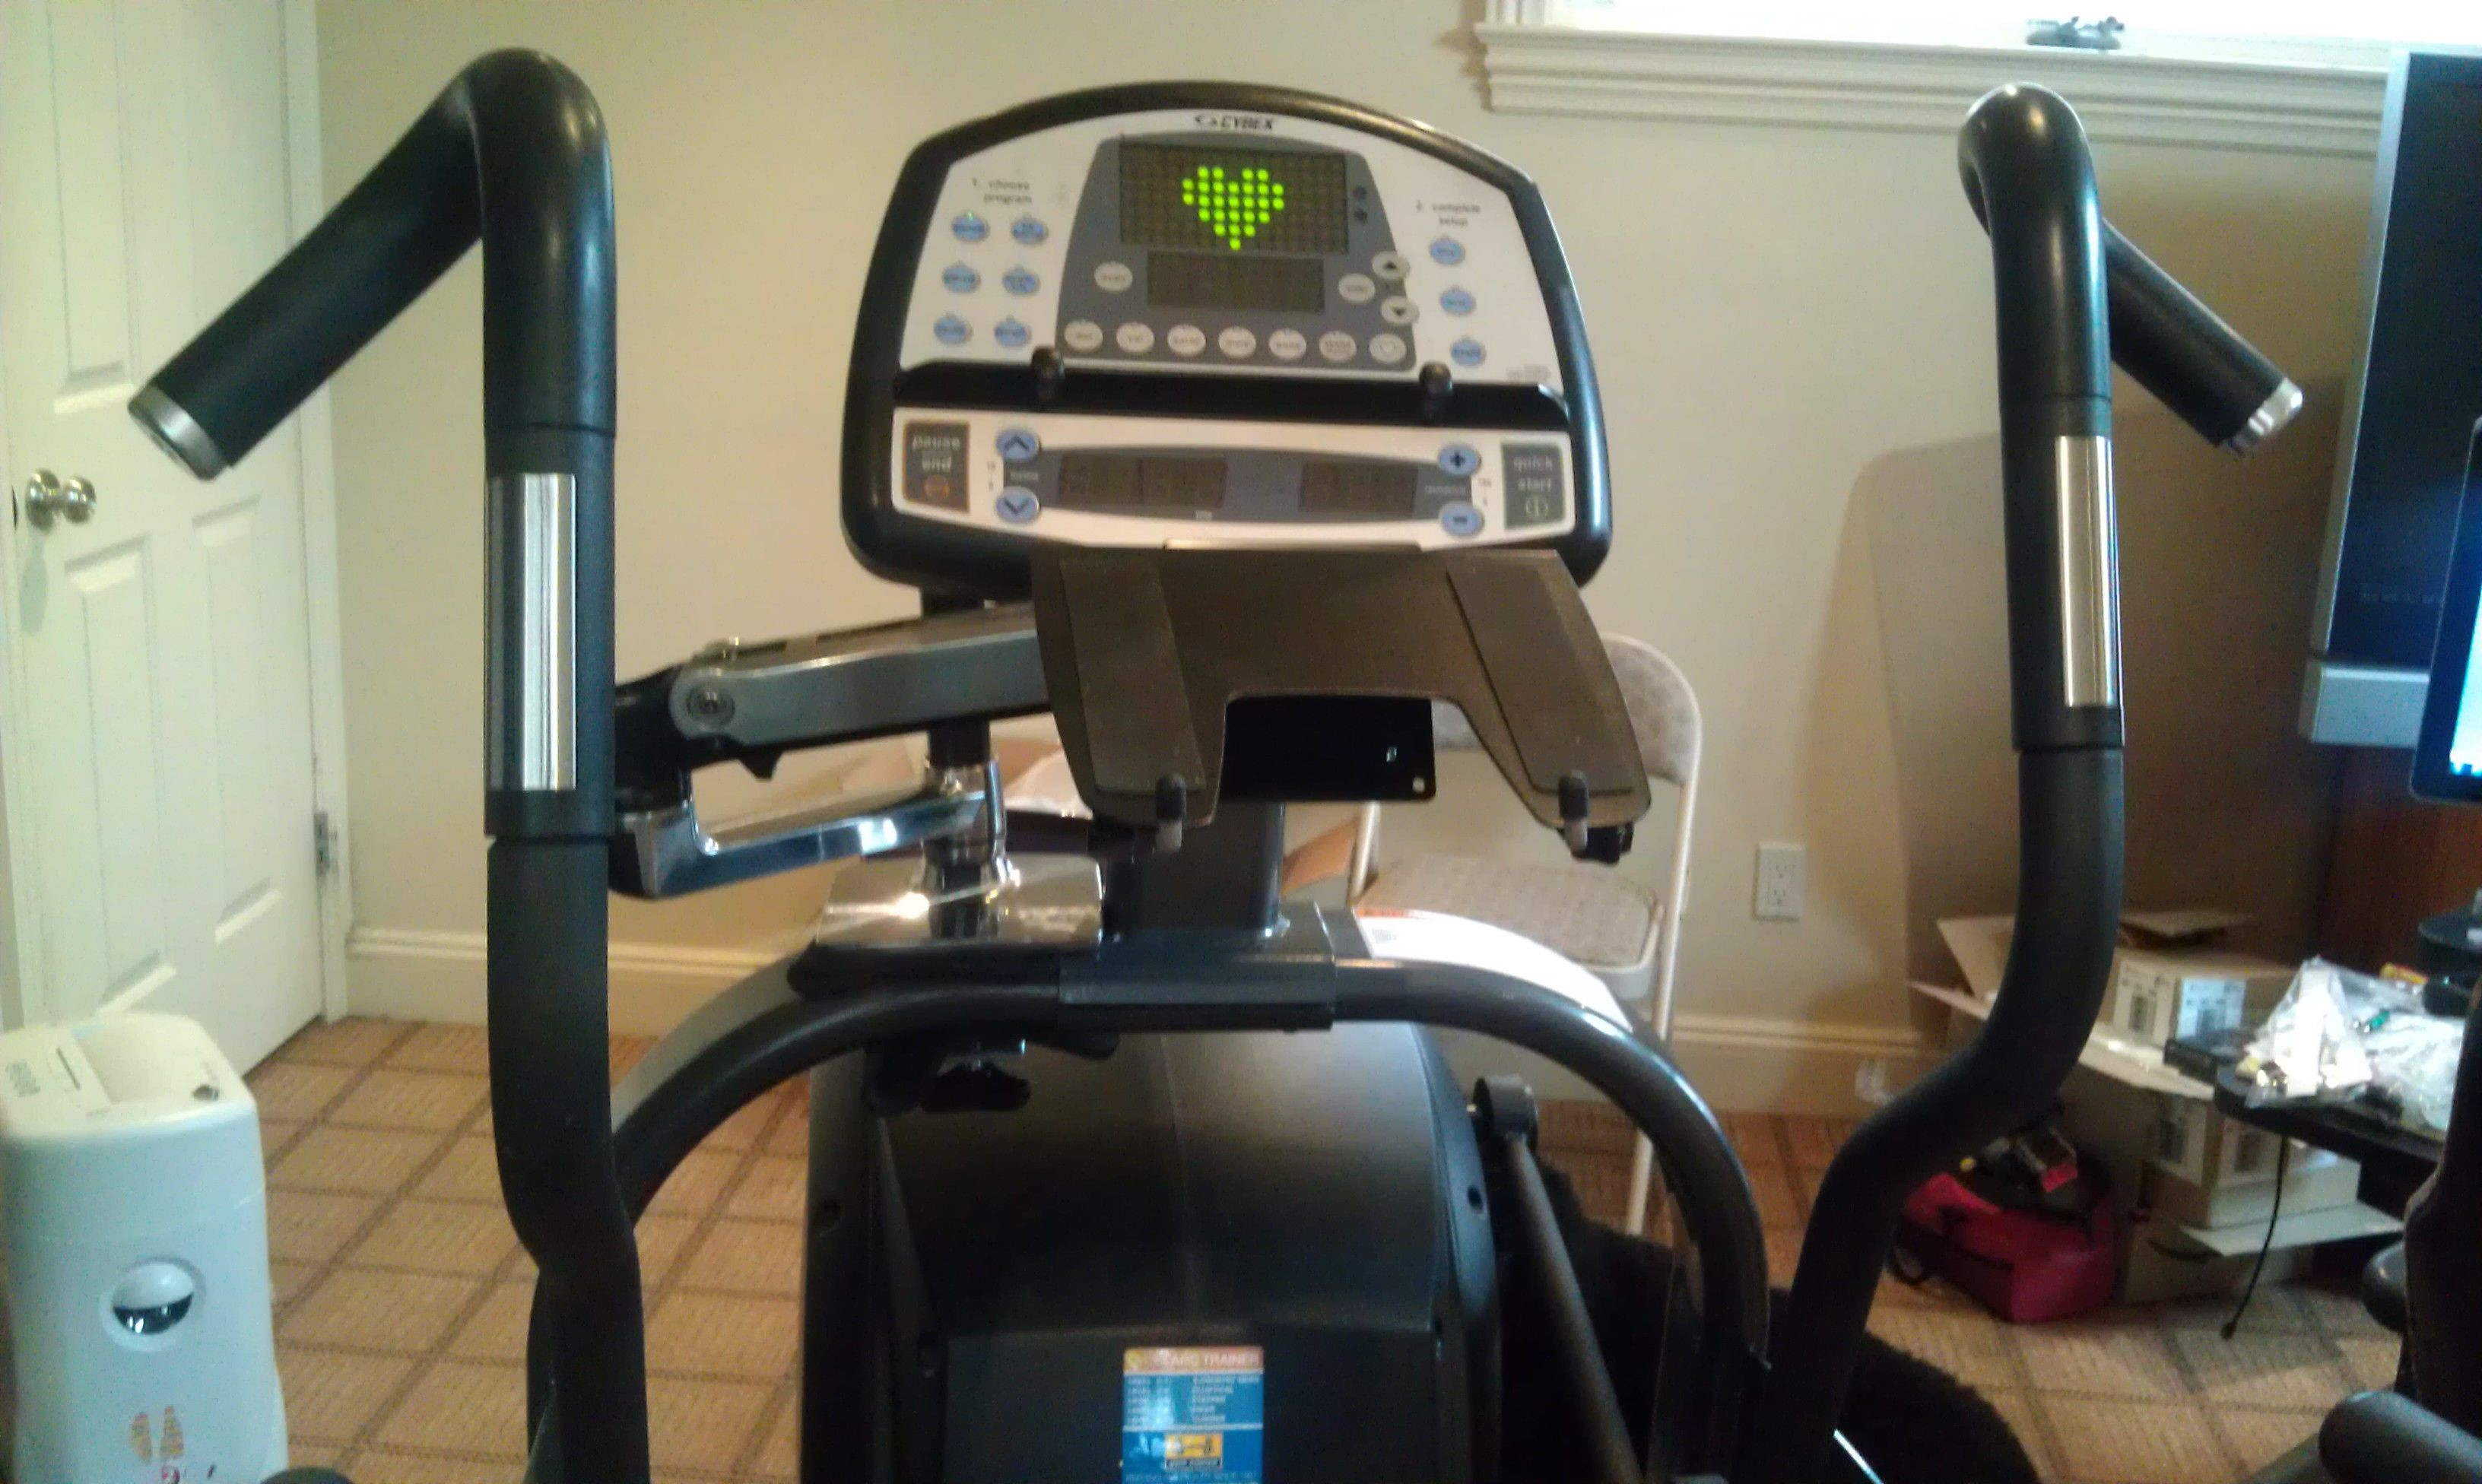 Clamp On Keyboard Mount Lets You Exercise On An Elliptical